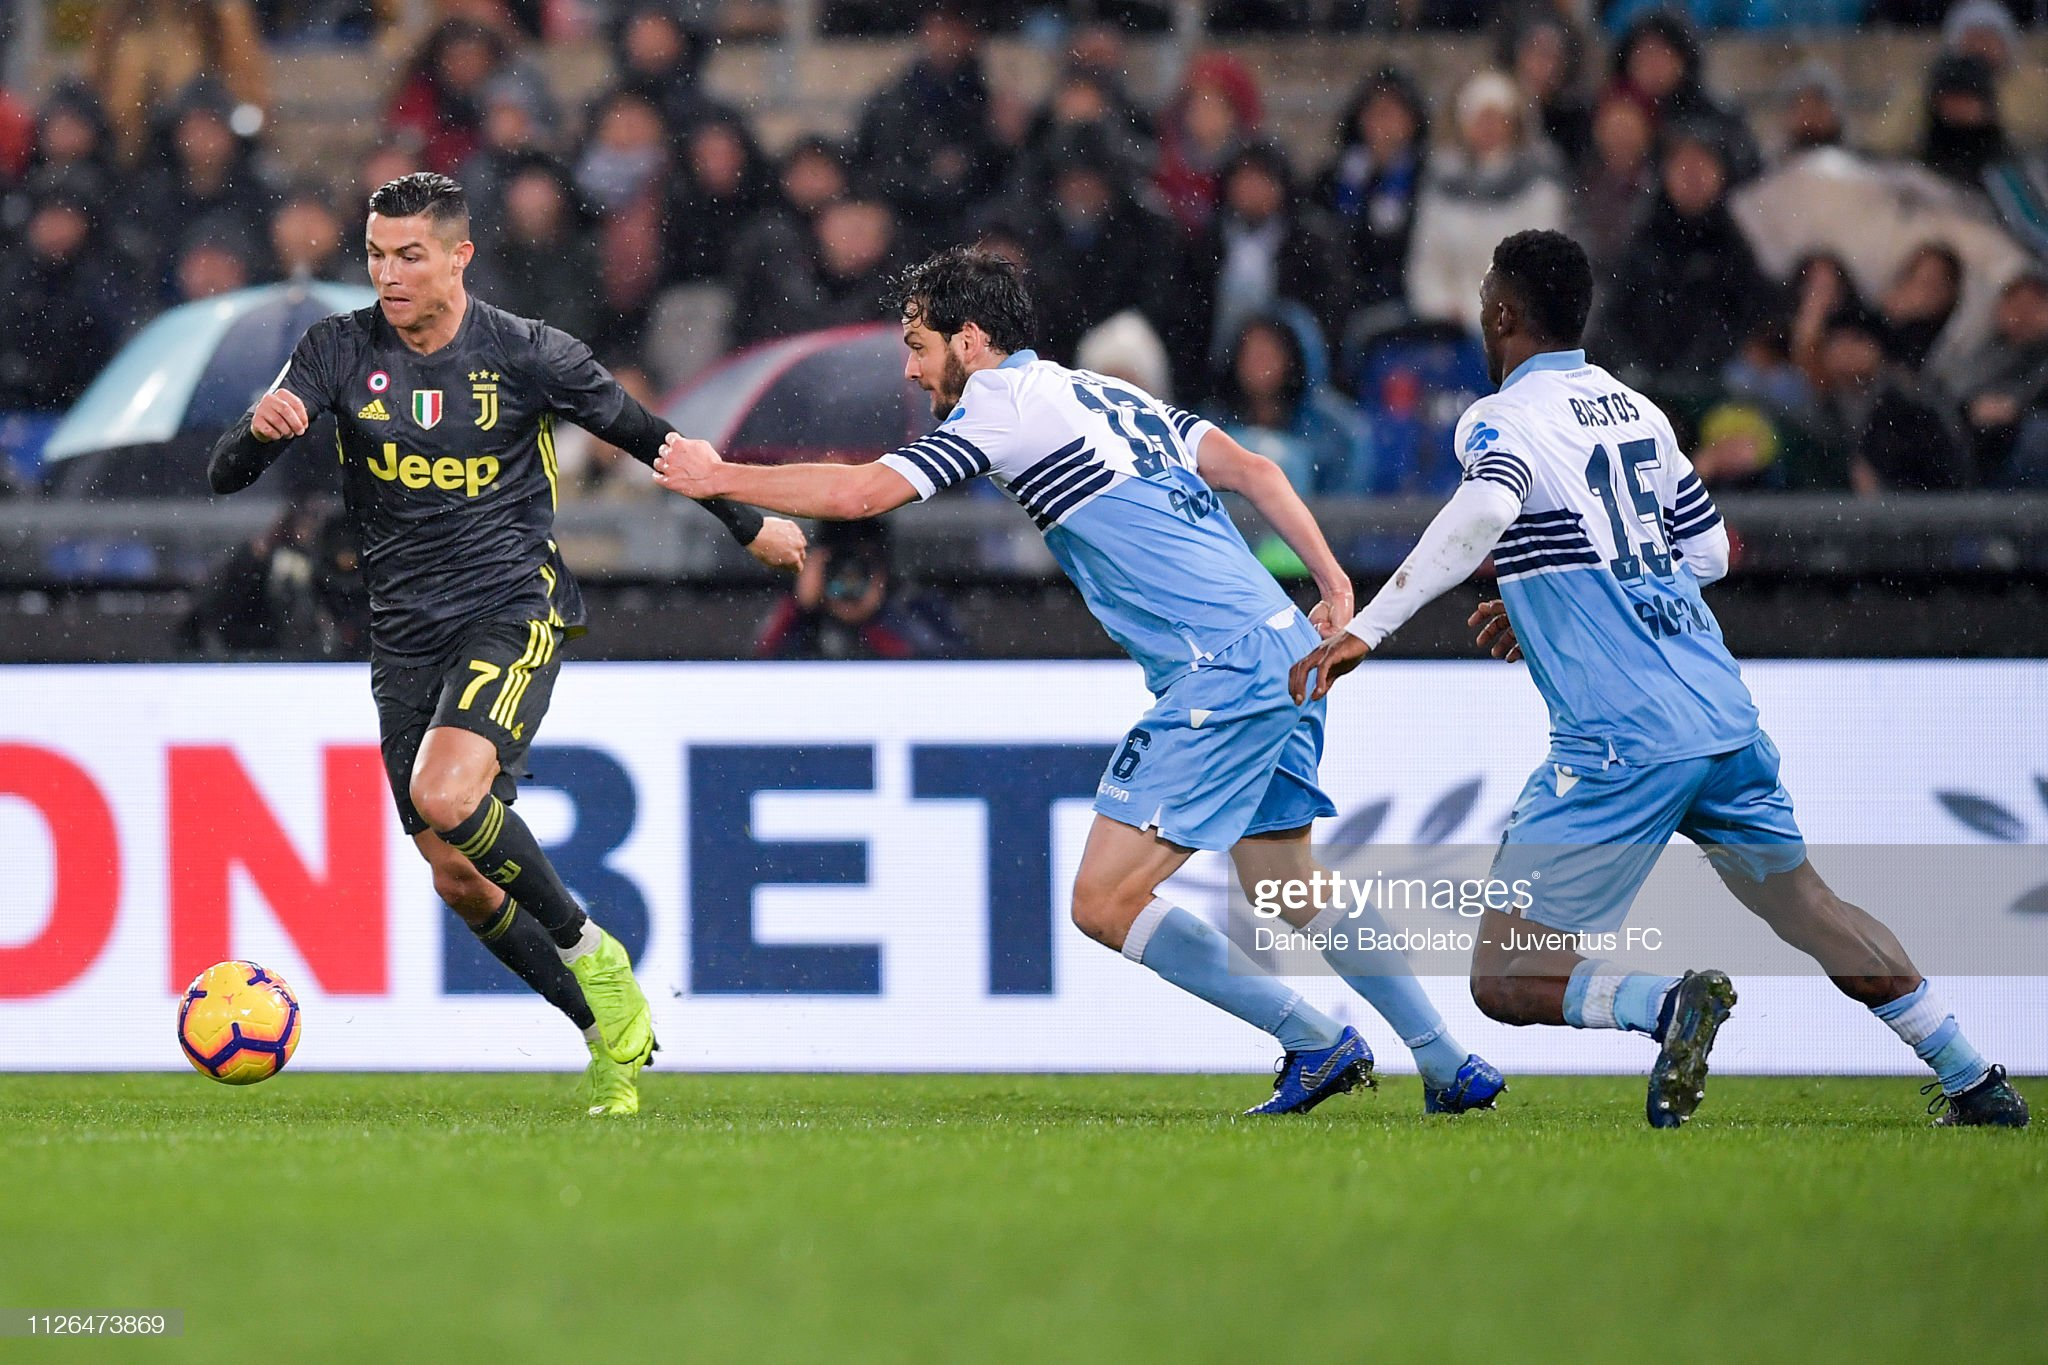 Lazio v Juventus preview, prediction and odds